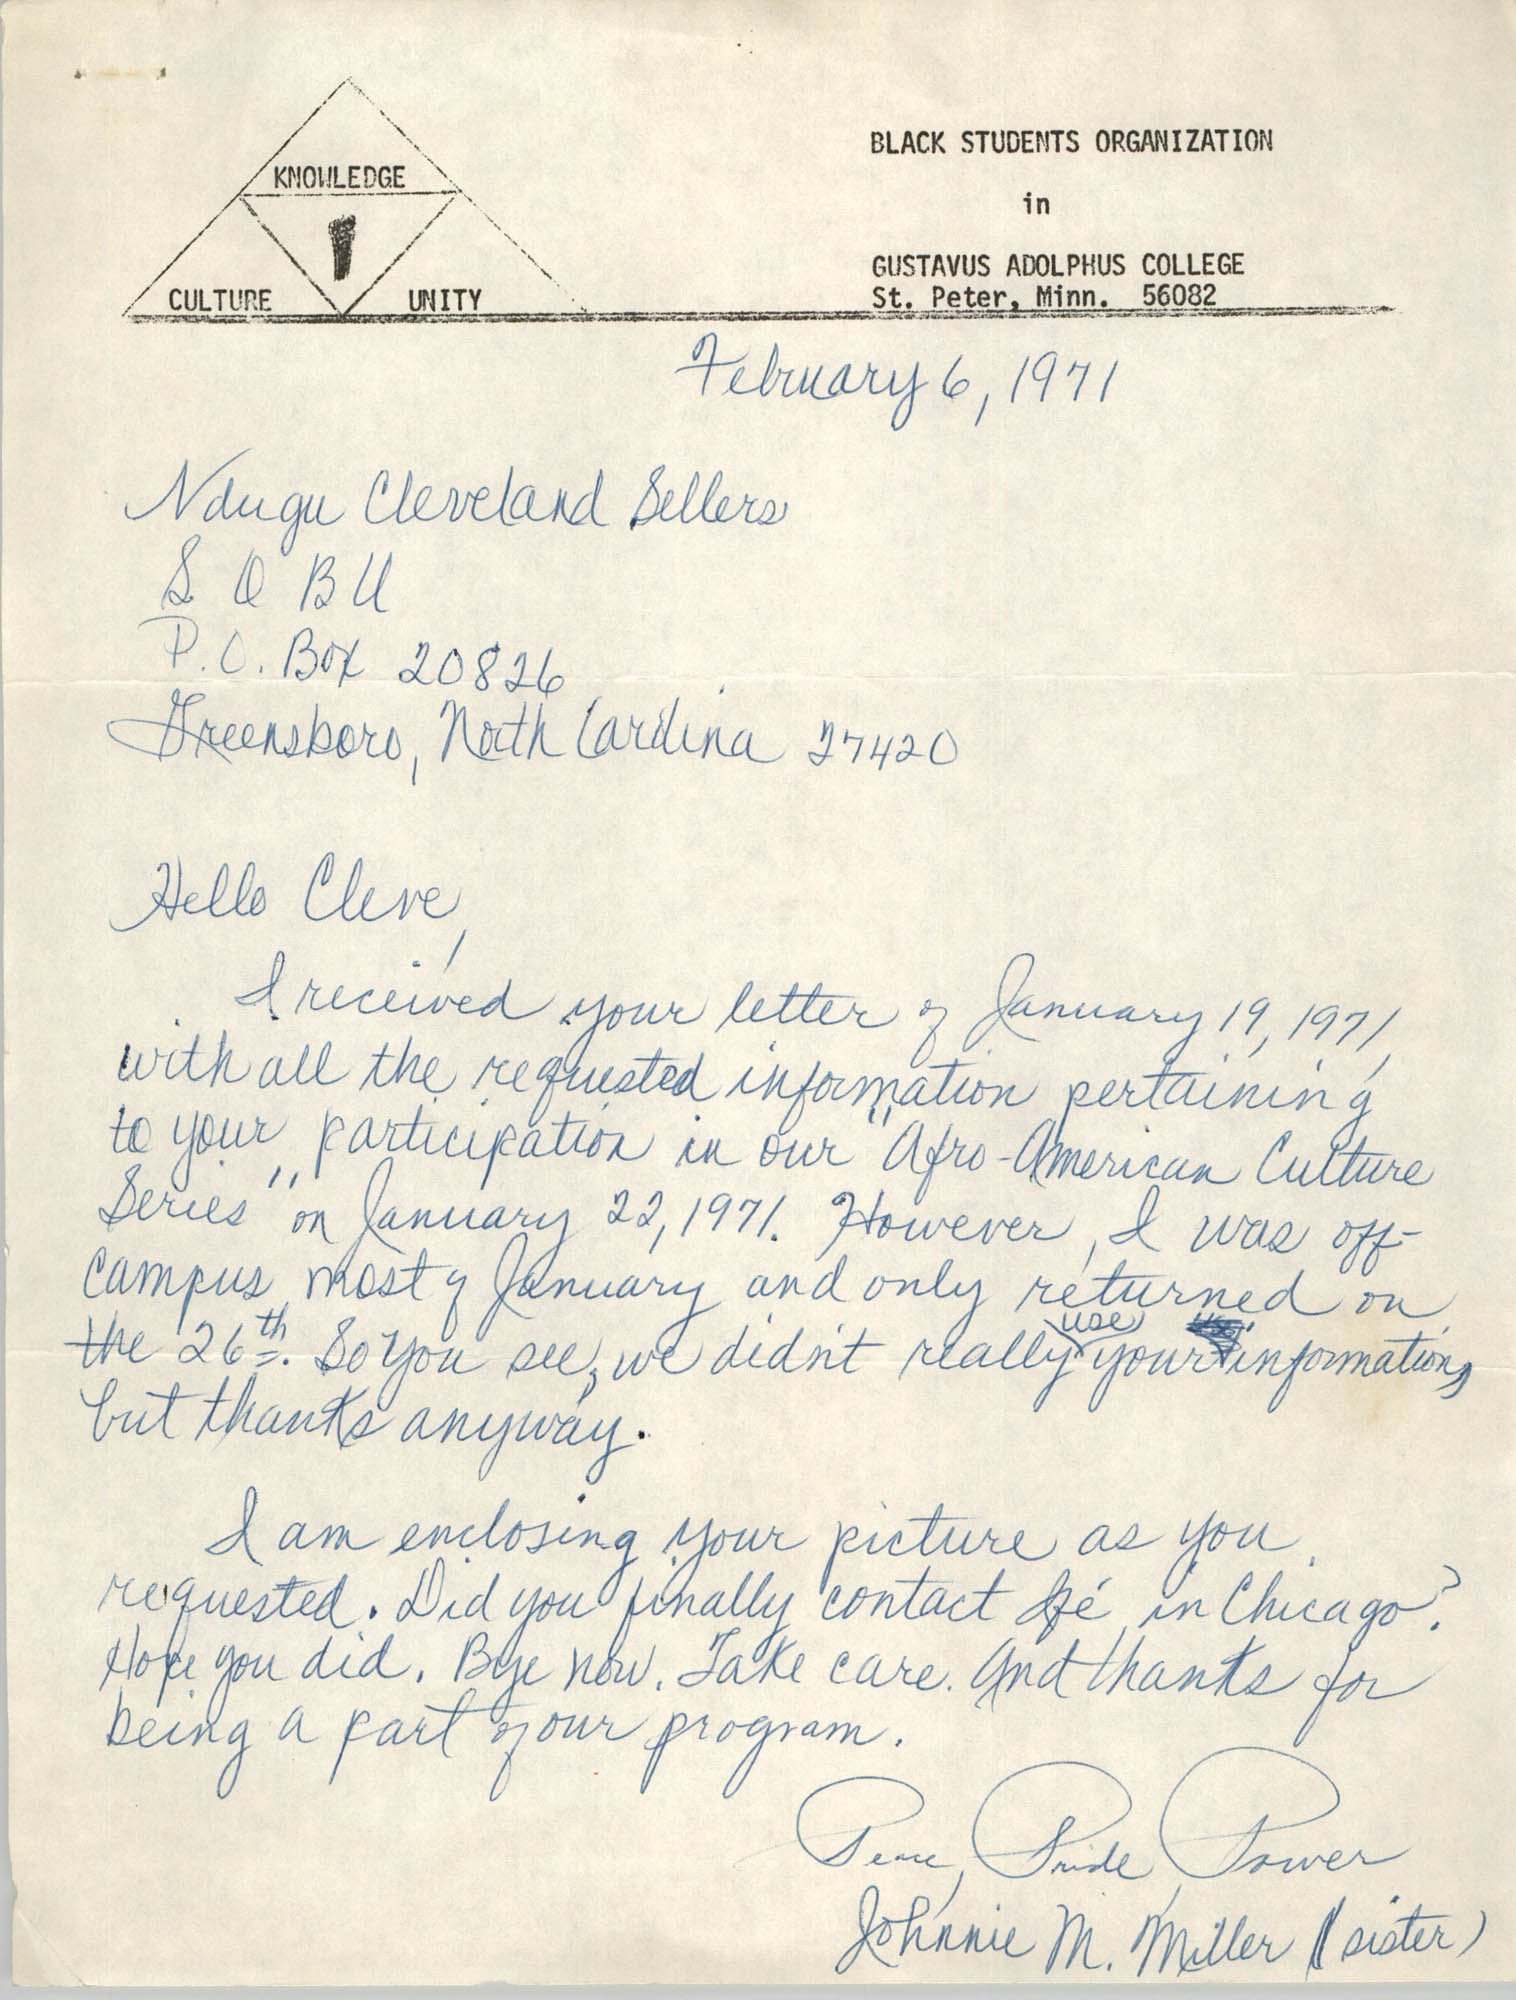 Letter from Johnnie M. Miller to Cleveland Sellers, February 6, 1971